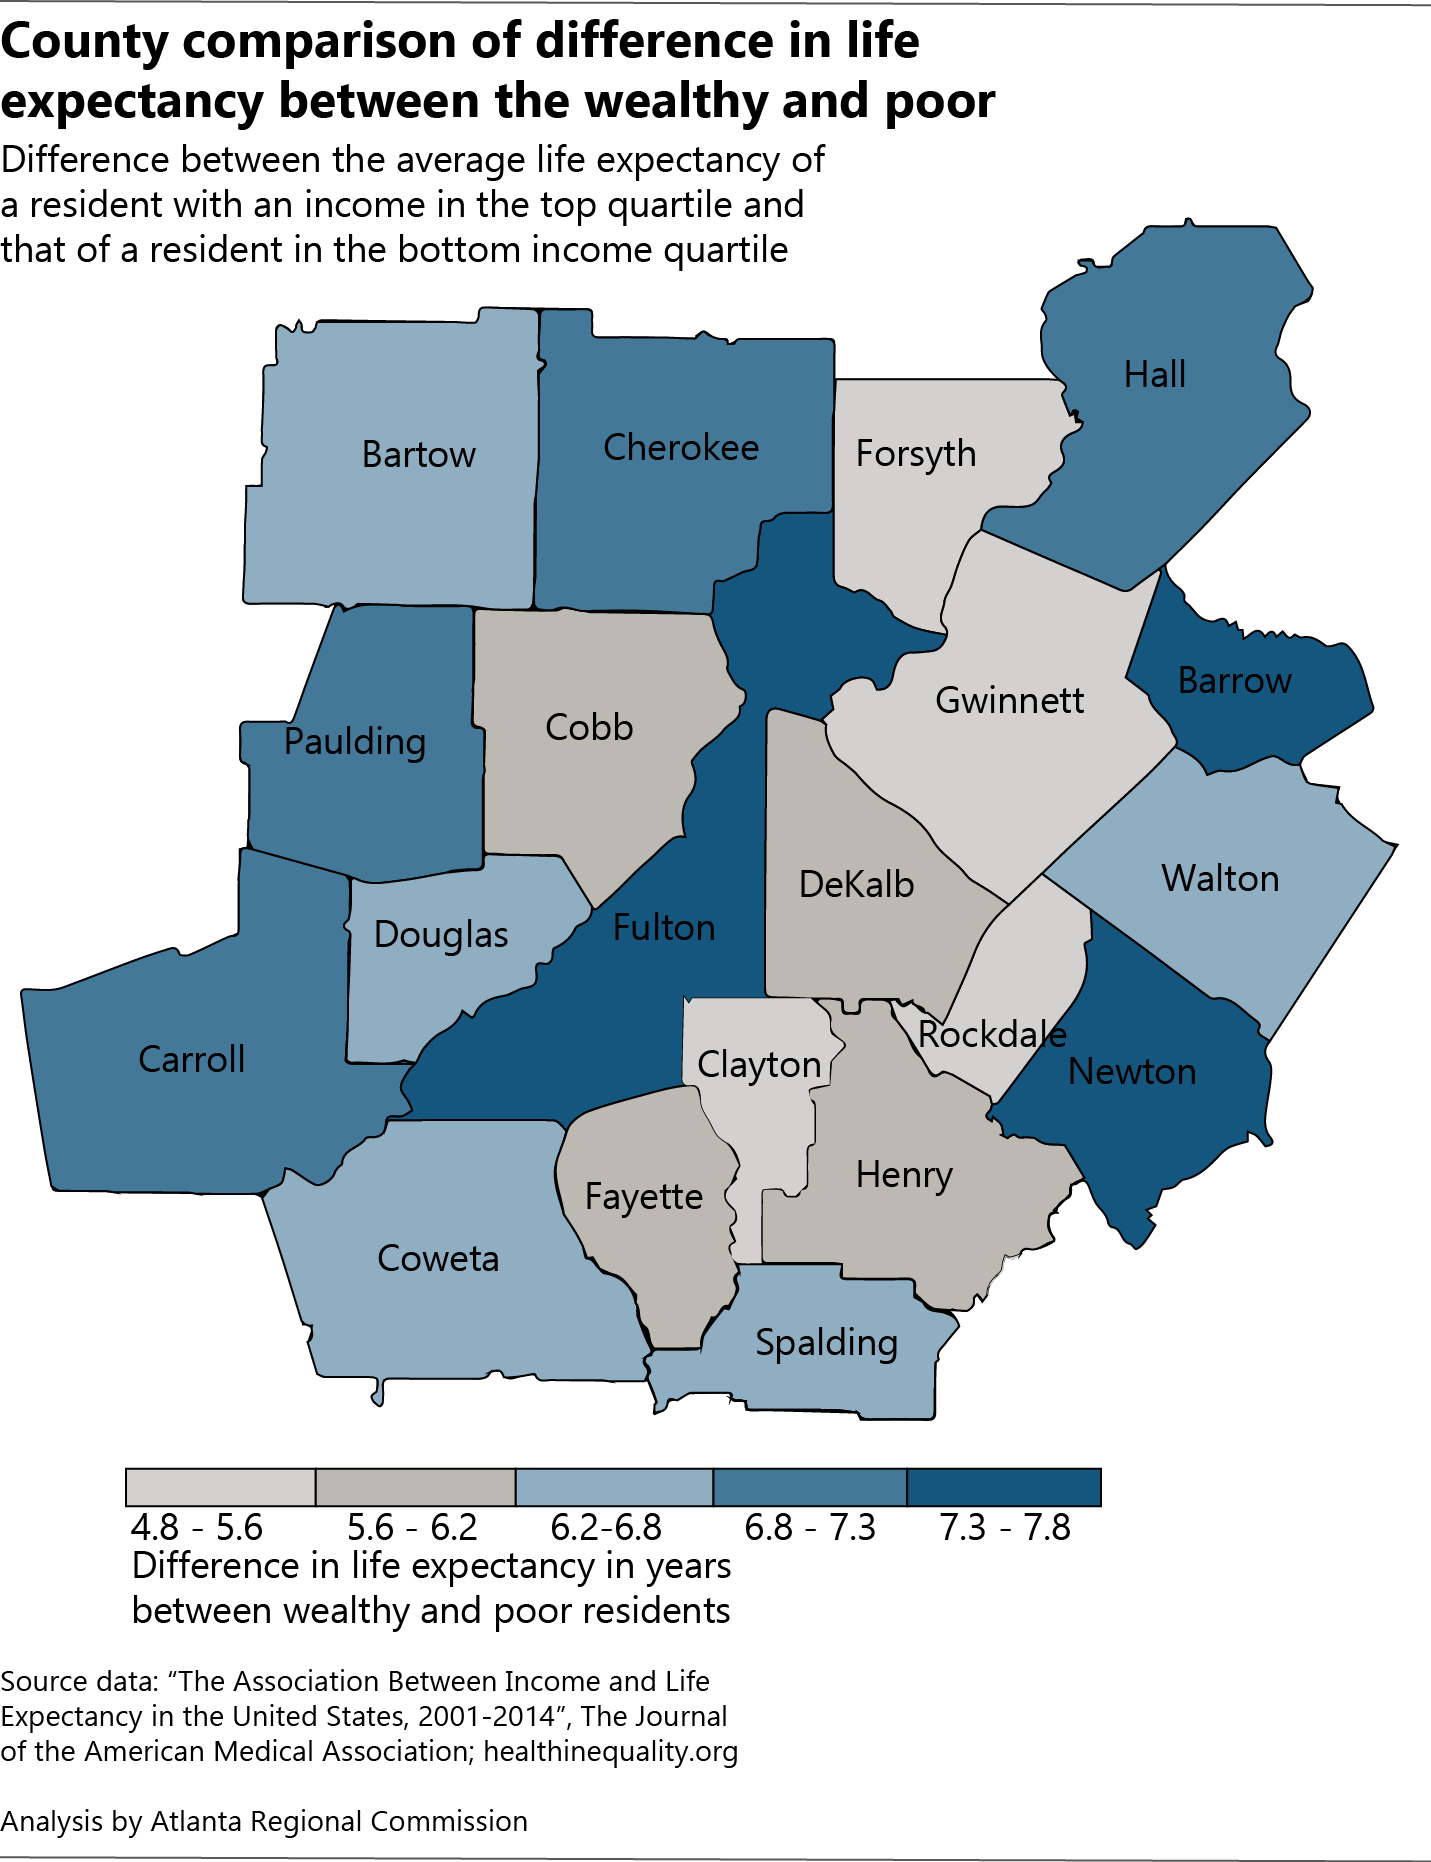 Monday Mapday: County-level disparities in life expectancy